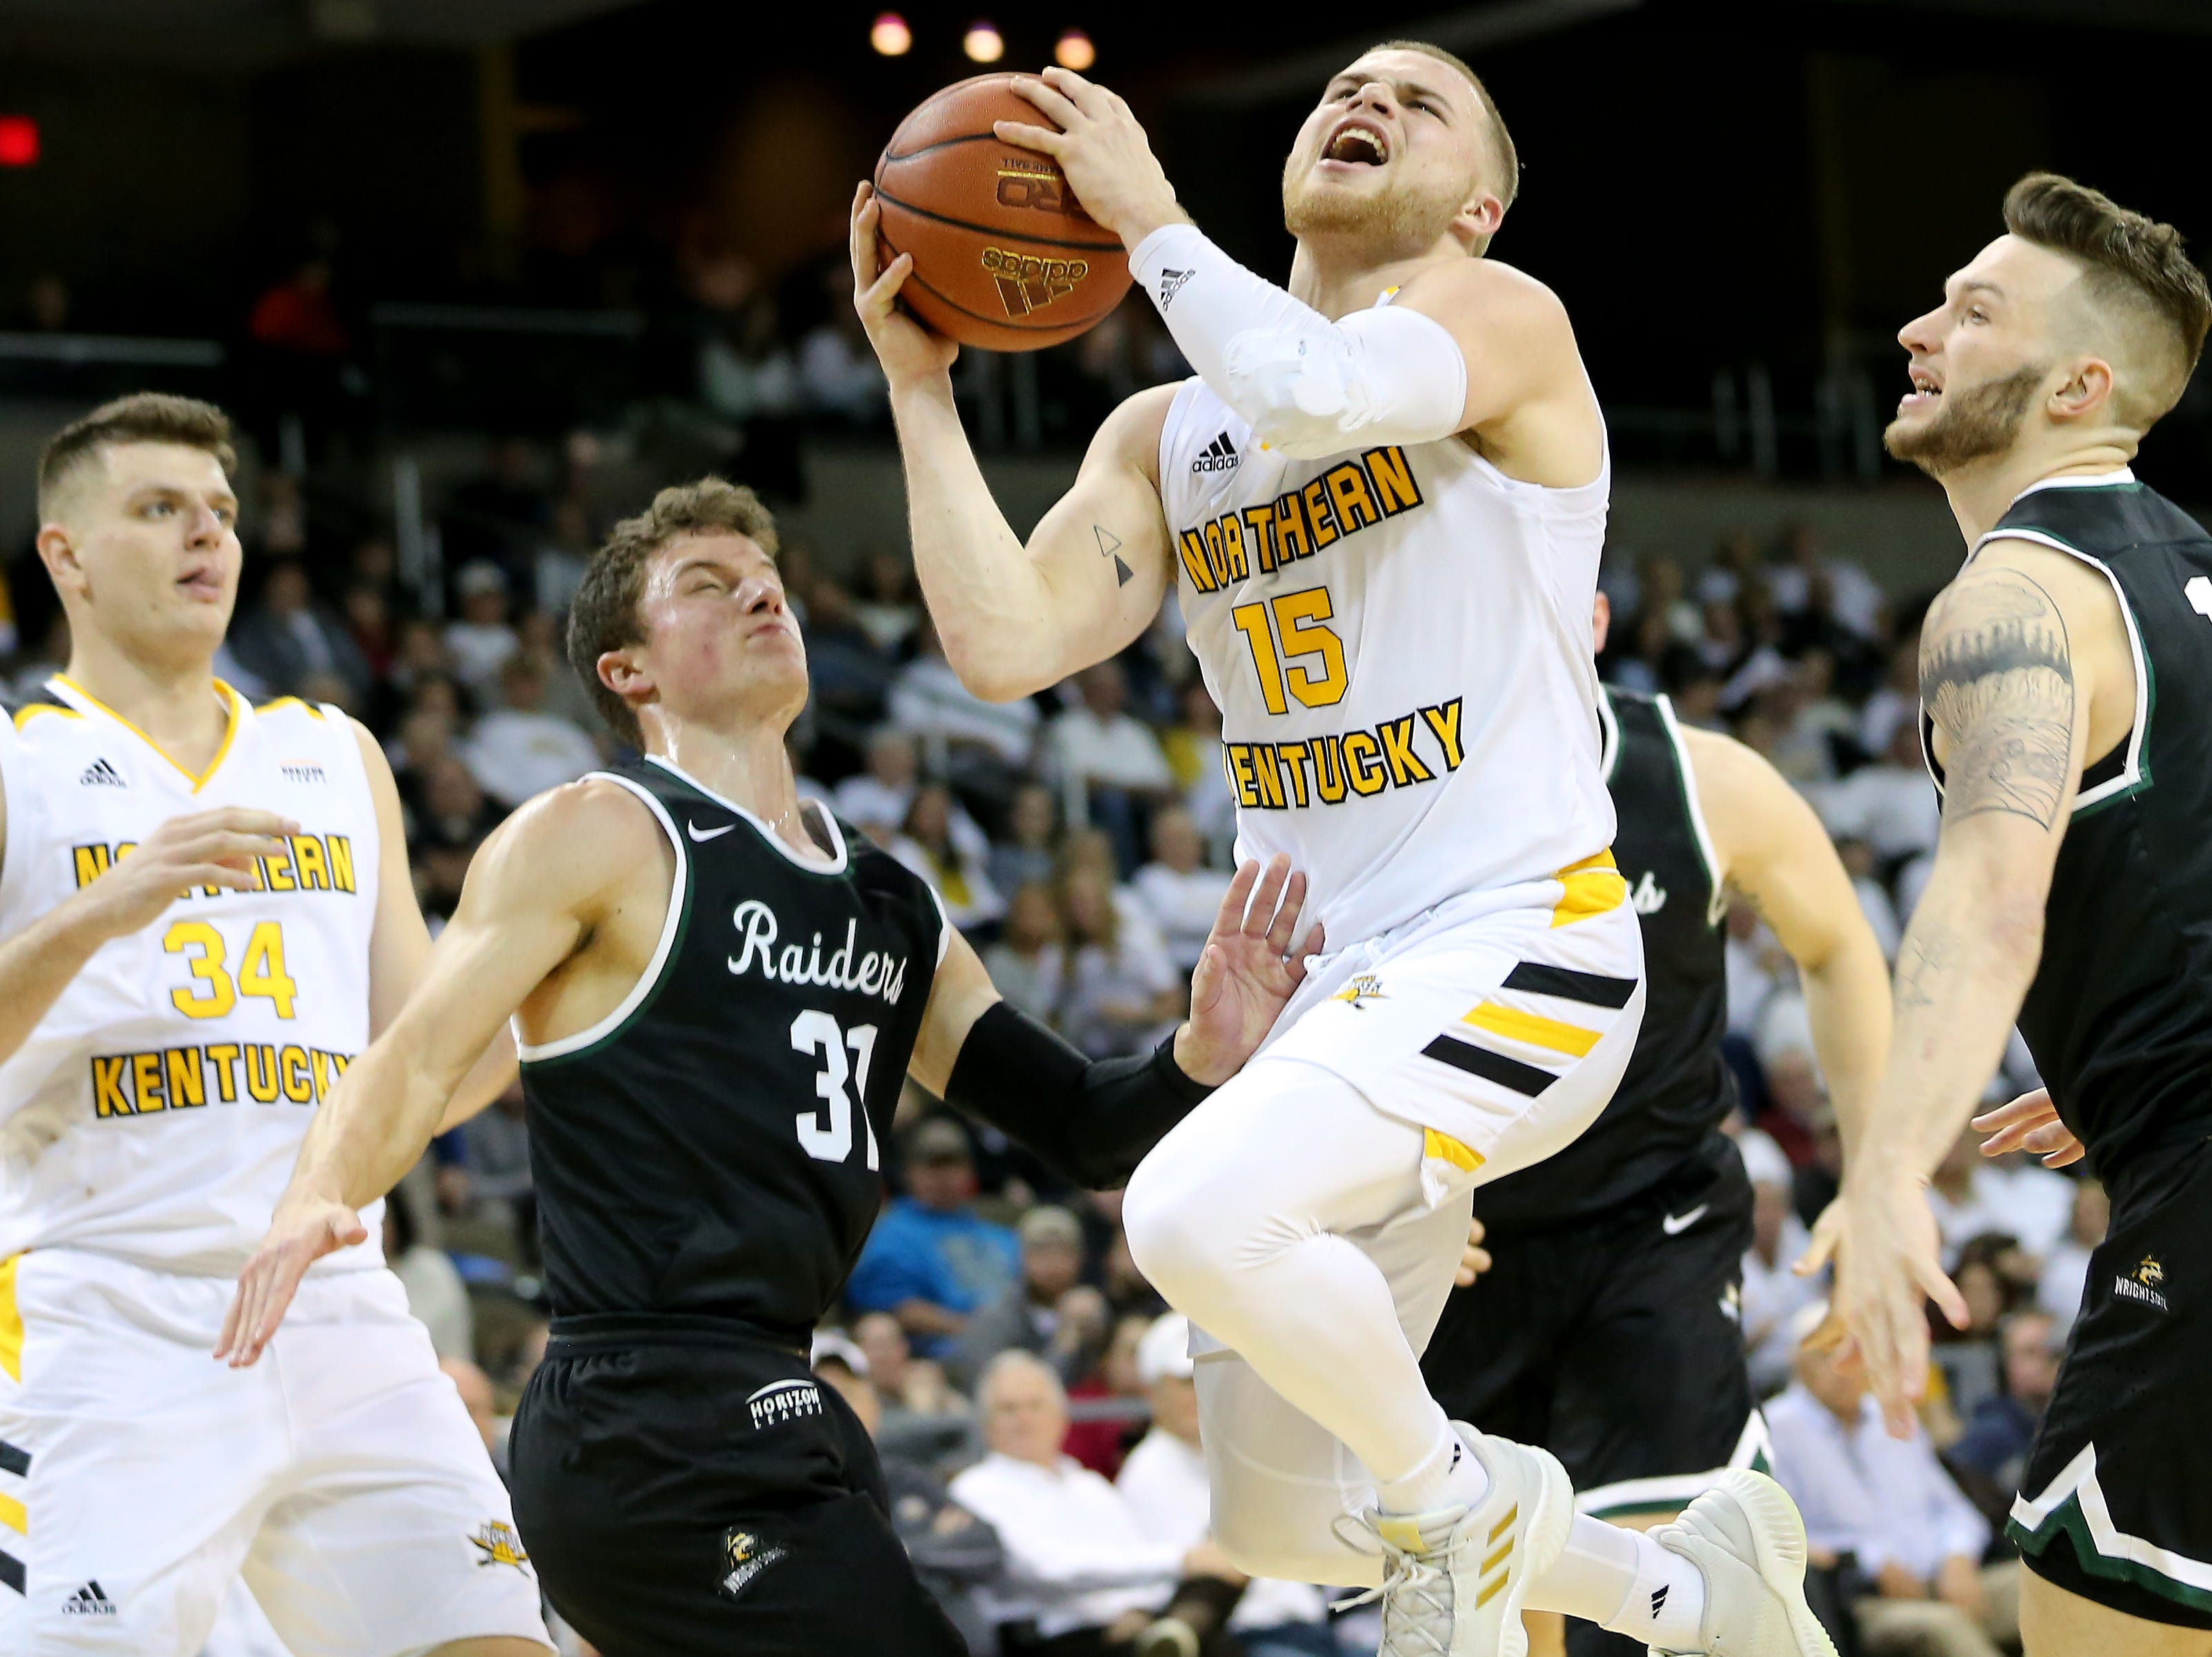 Northern Kentucky Norse guard Tyler Sharpe (15) drives to the basket in the second half of an NCAA basketball game against the Wright State Raiders, Friday, Jan. 11, 2019, at BB&T Arena in Highland Heights, Ky.